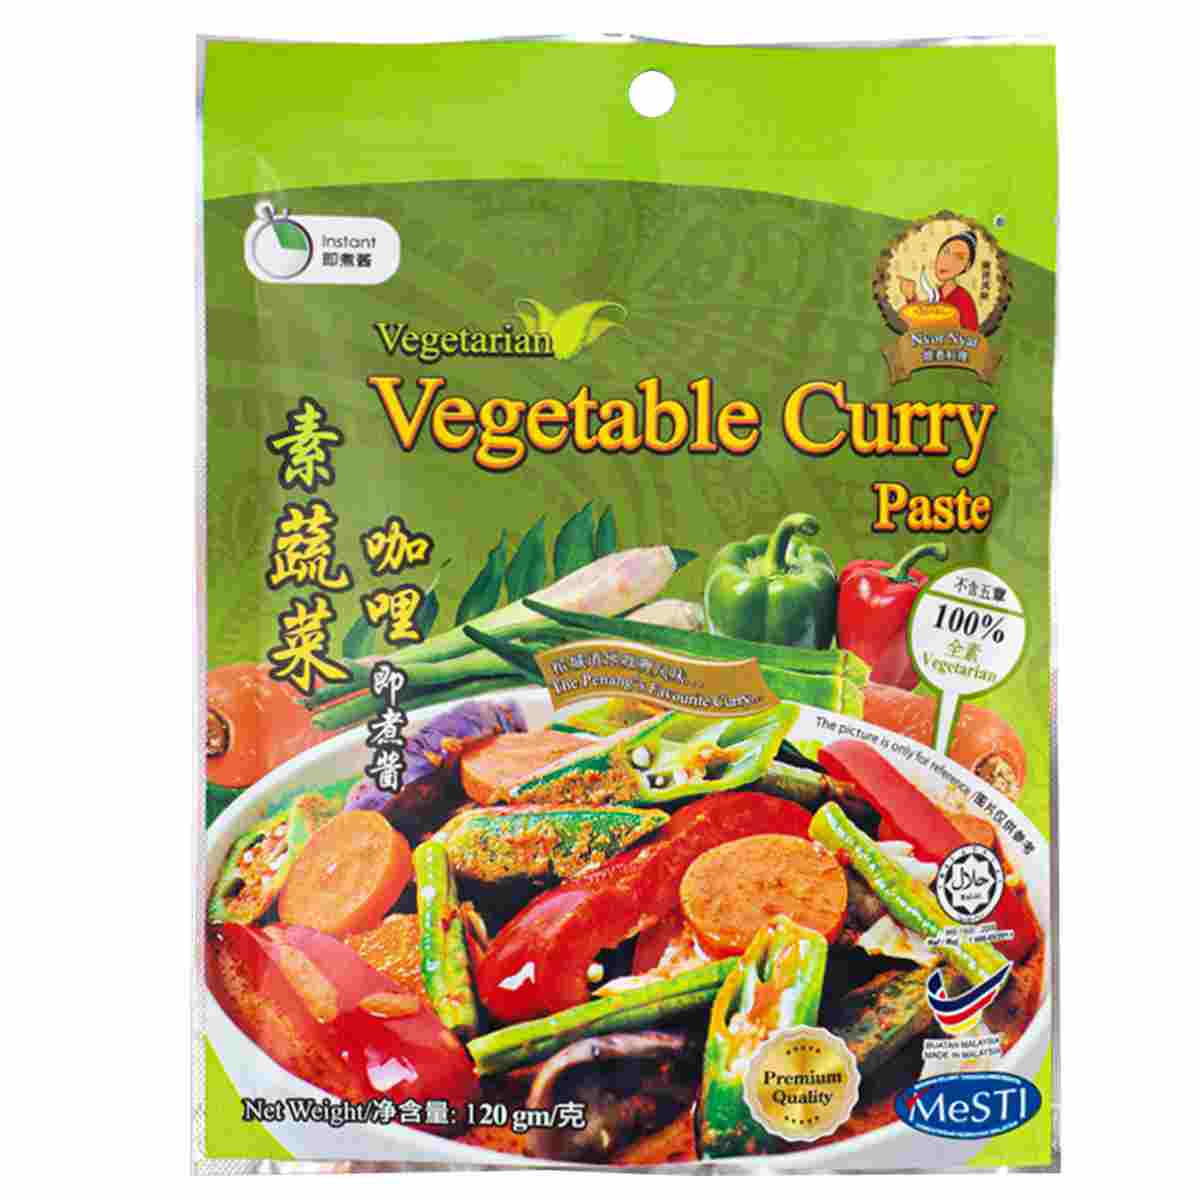 Image Vegetable Curry Paste 娘惹 - 咖哩蔬菜即煮酱 120grams